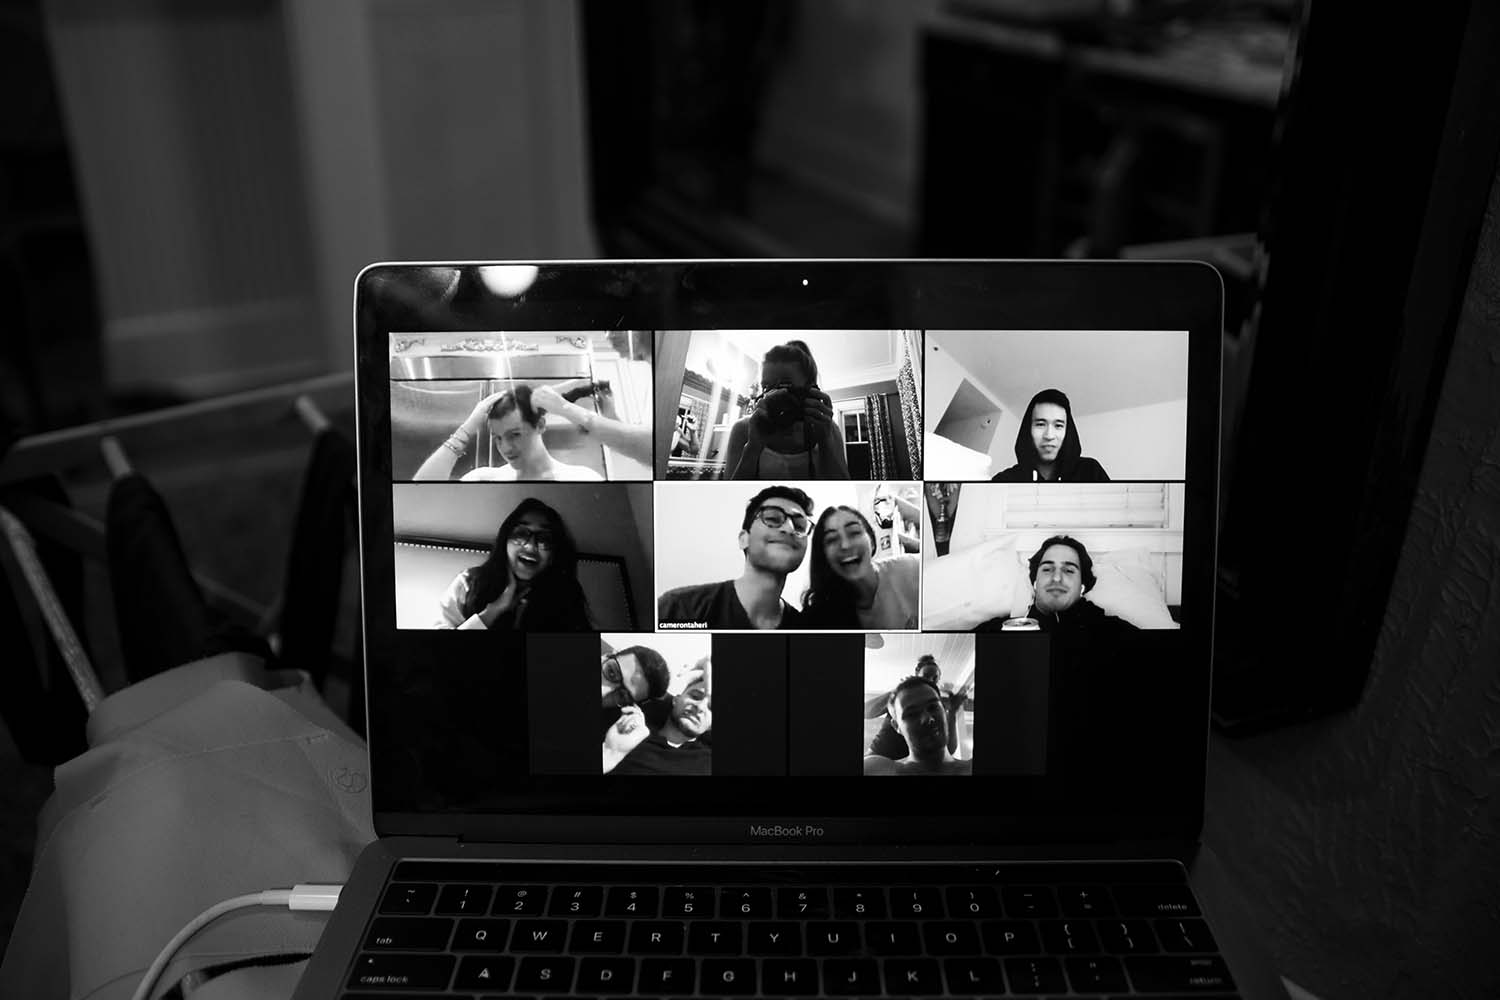 BW photo of zoom video conference on laptop